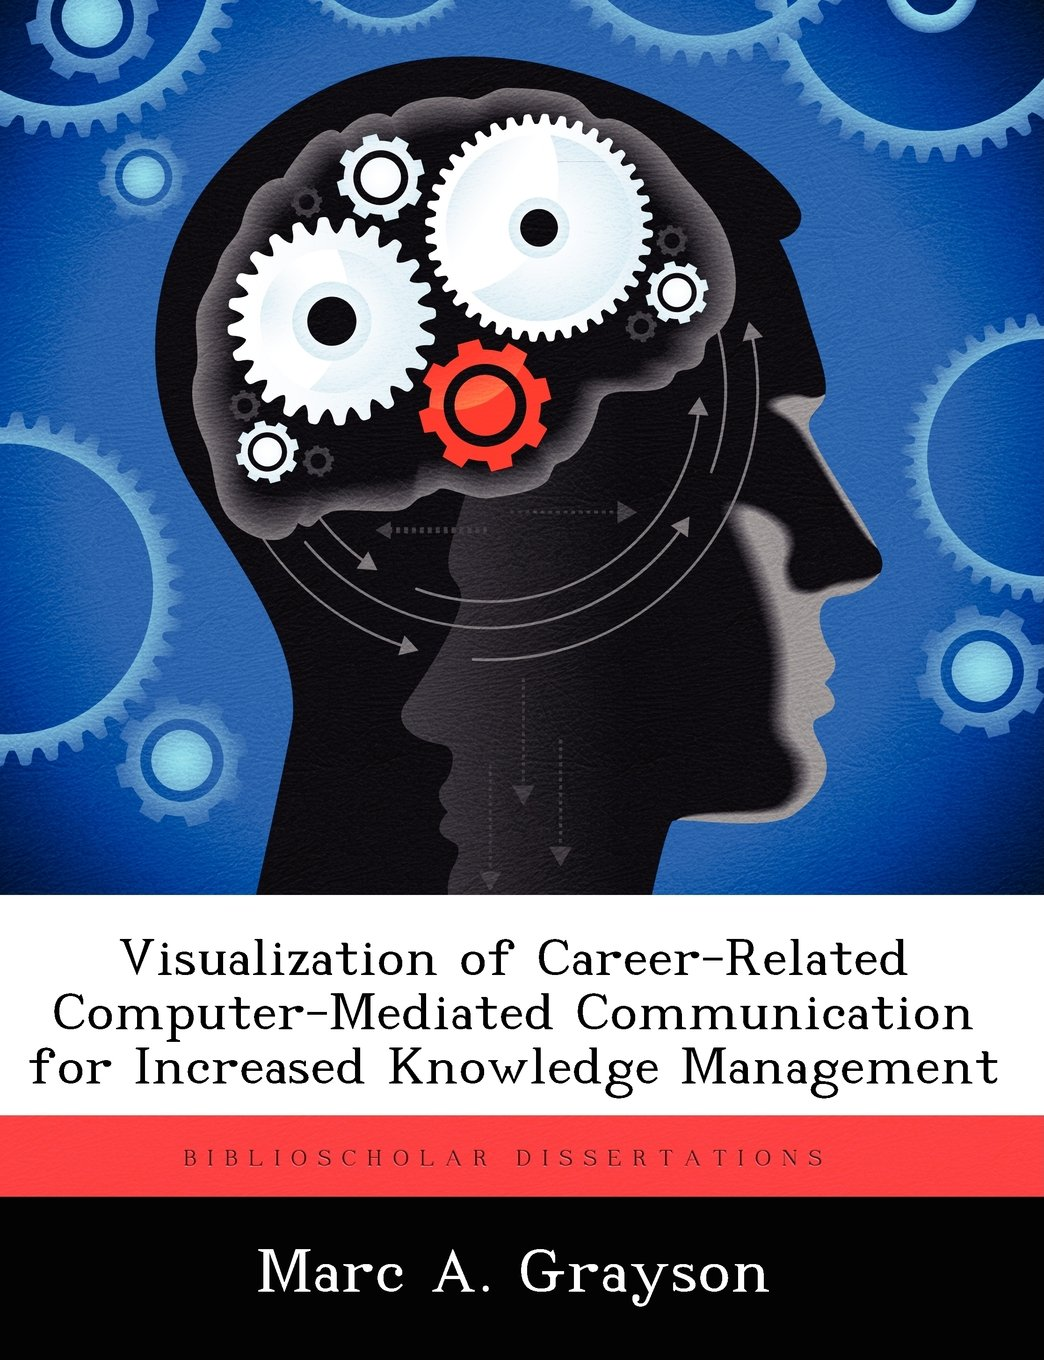 Download Visualization of Career-Related Computer-Mediated Communication for Increased Knowledge Management ebook